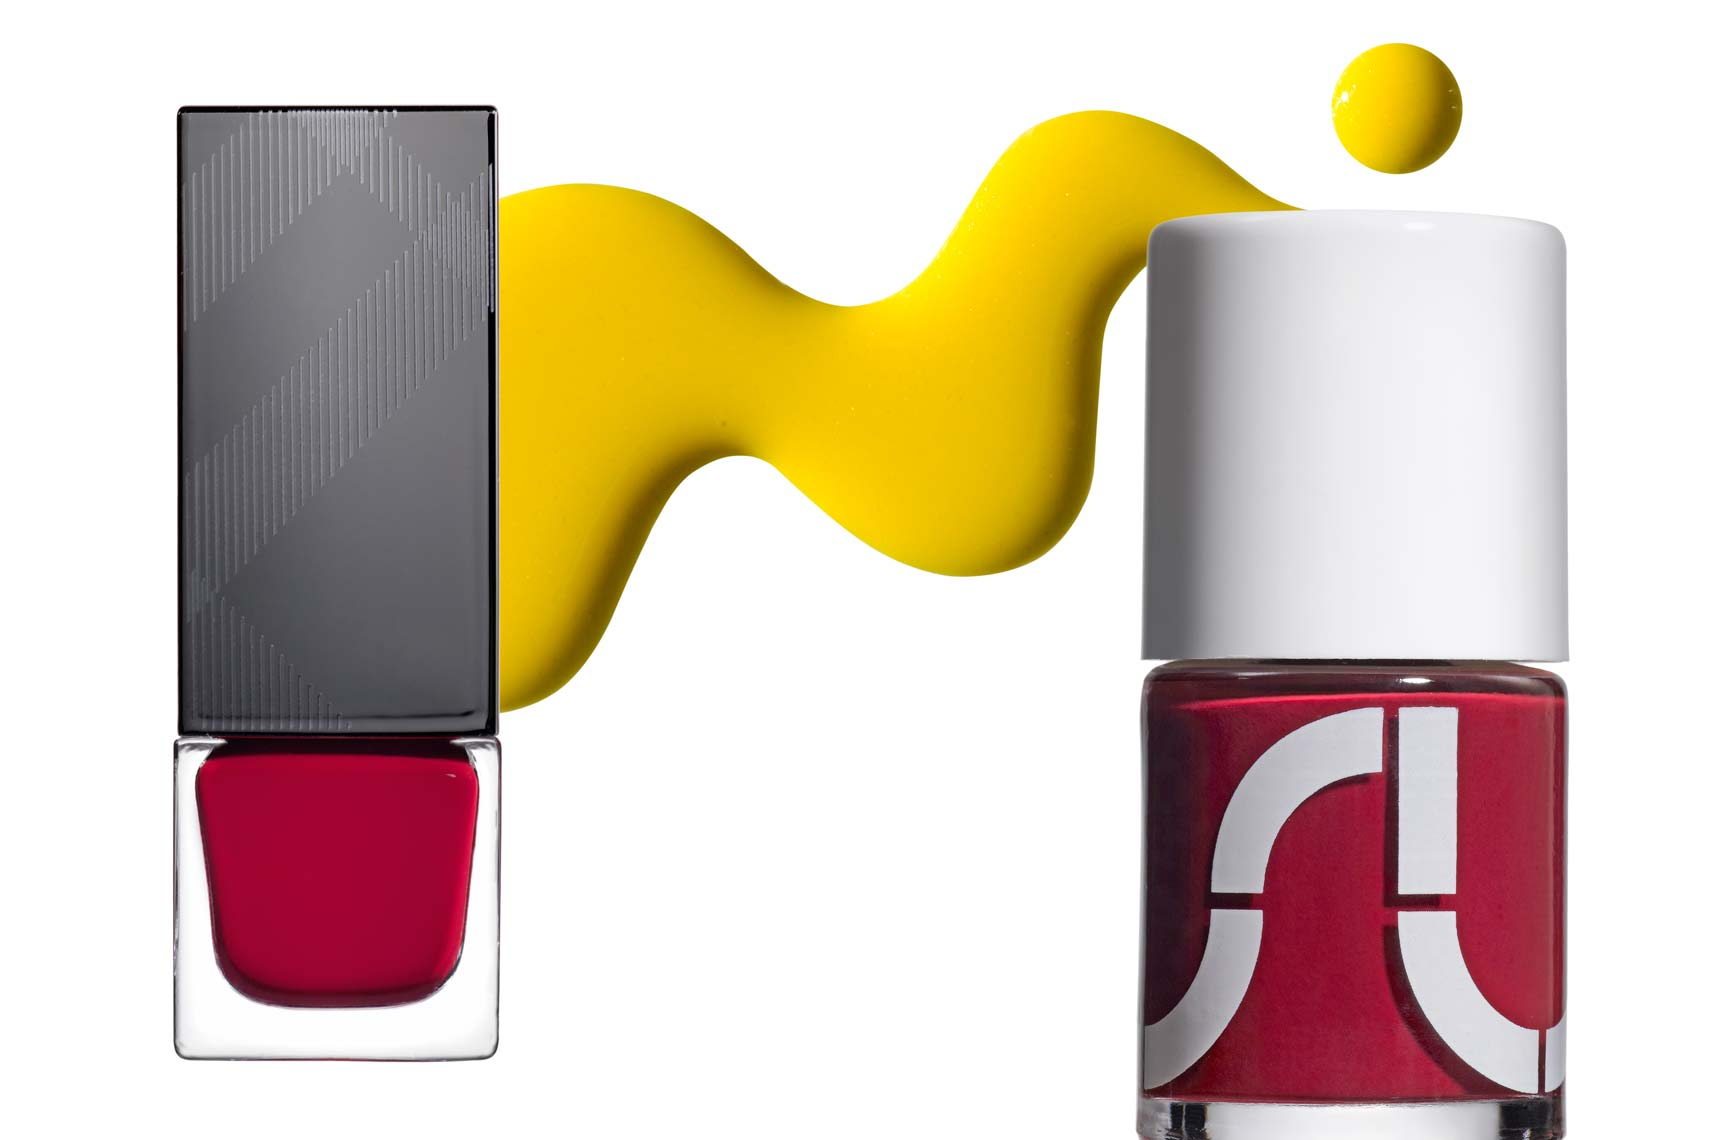 Cosmetics, Nailpolish Product Shot and Spill of Yellow Lacquer - Mike Lorrig